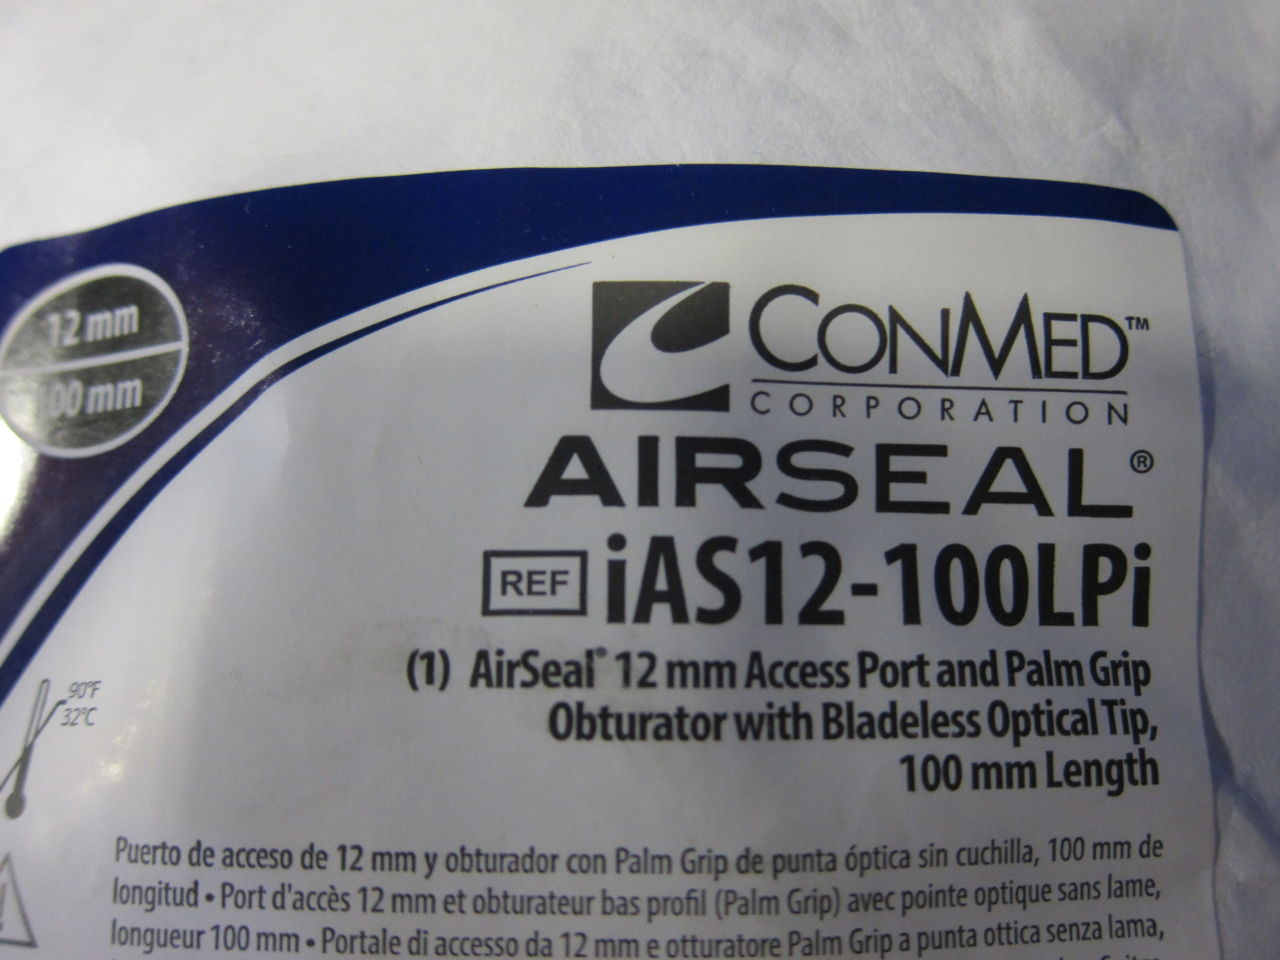 CONMED AirSeal Access Port, Palm Grip Obturator - Lot of 10